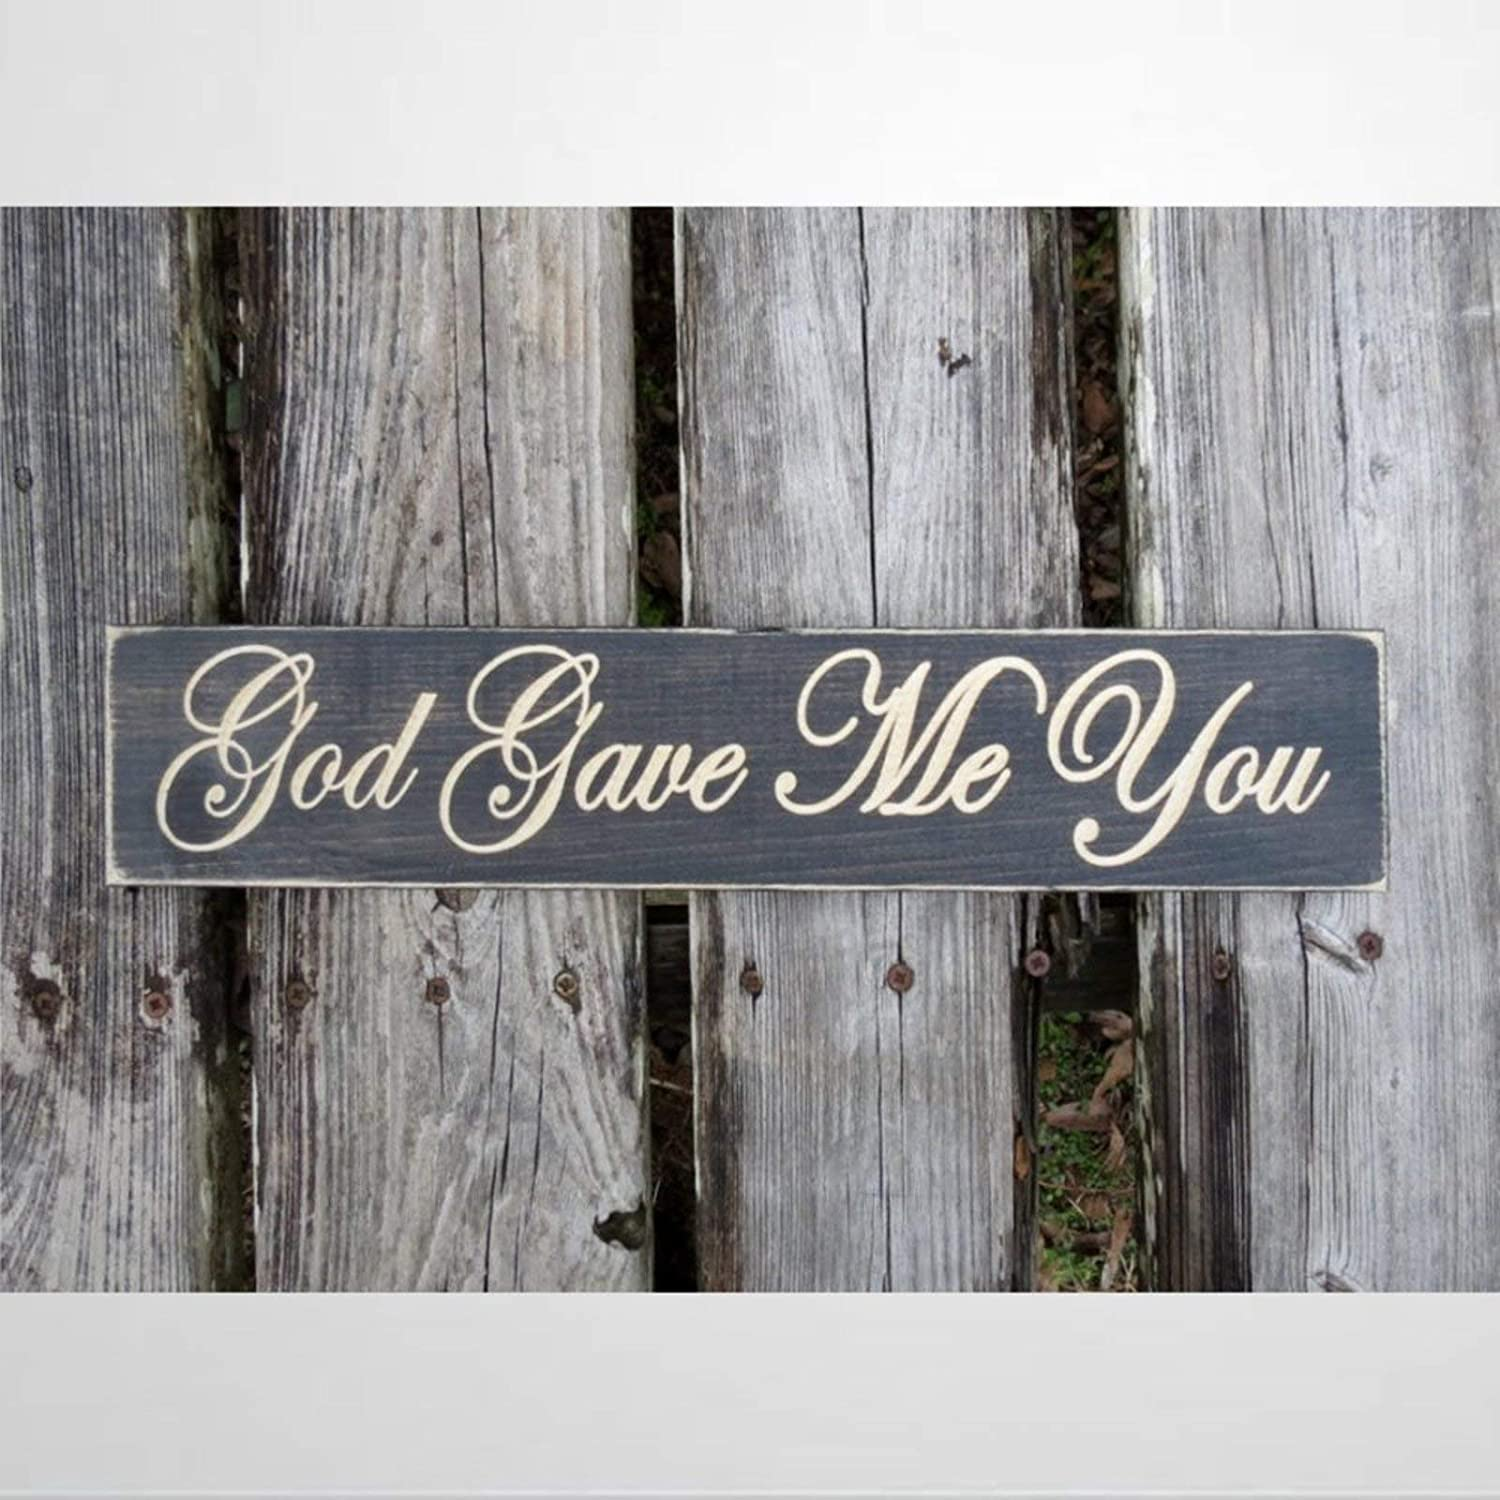 DONL9BAUER Wooden Plaque Sign, God Gave Me You Sign,Wedding Gift,Wood Sign, Wood Wall Decor Art, Farmhouse Rustic Mural Wood Pallet Perfect for Home Bar Office